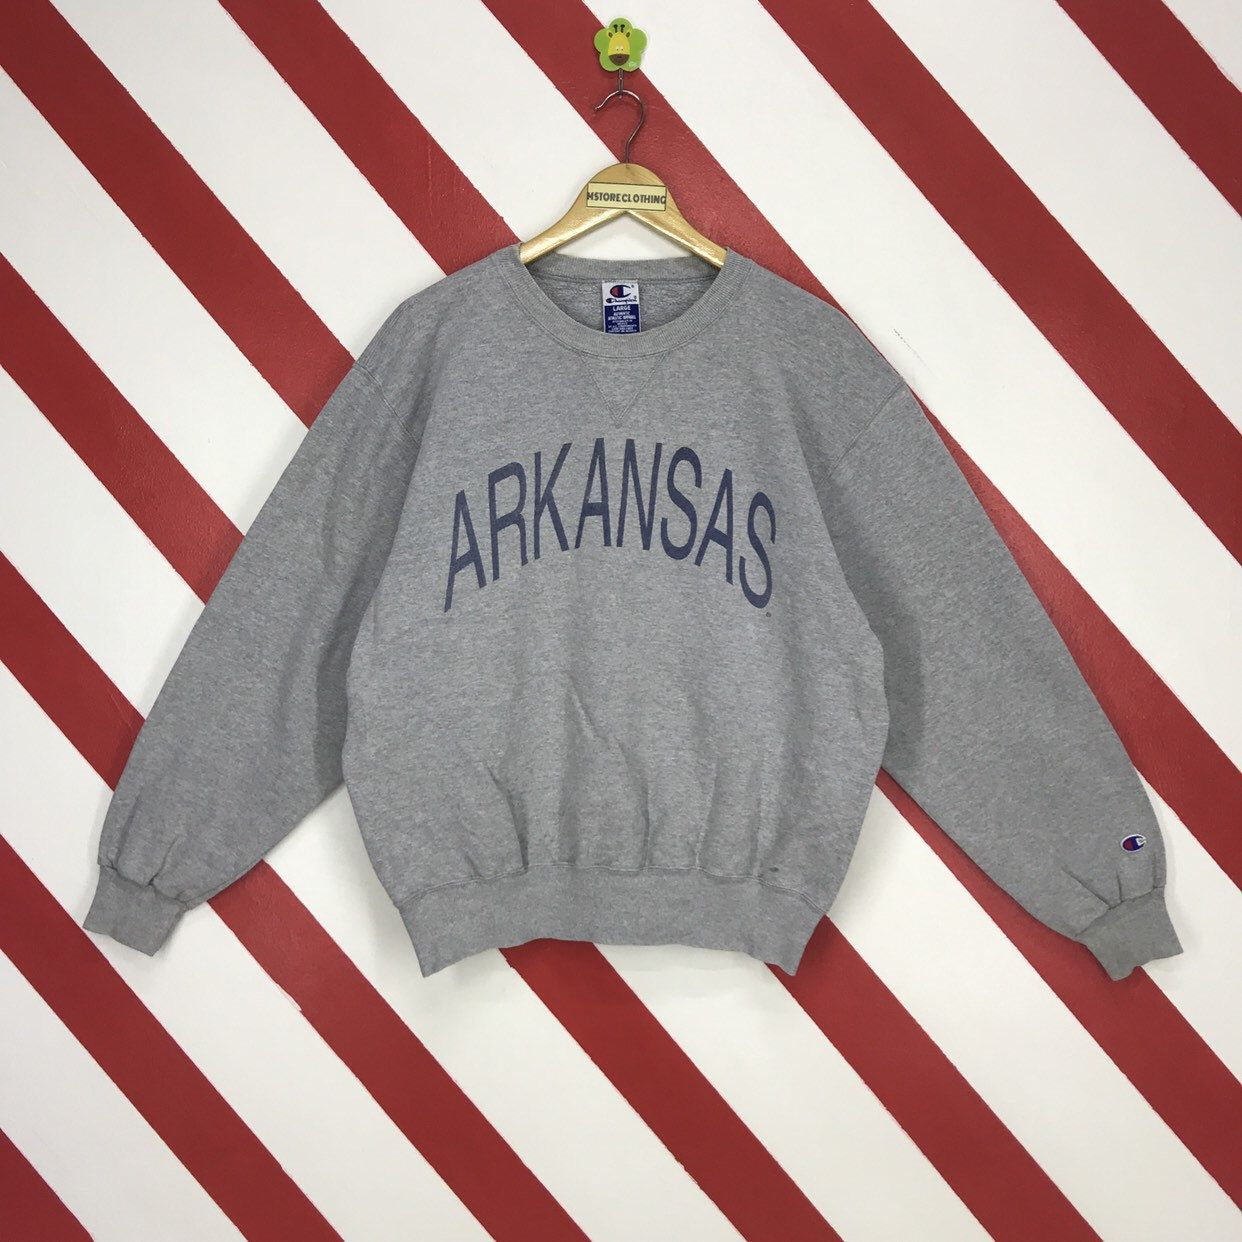 Excited To Share The Latest Addition To My Etsy Shop Vintage 90s Champion Arkansas Sweatshirt Champion Swea Champion Sweatshirt Champion Crewneck Sweatshirts [ 1242 x 1242 Pixel ]